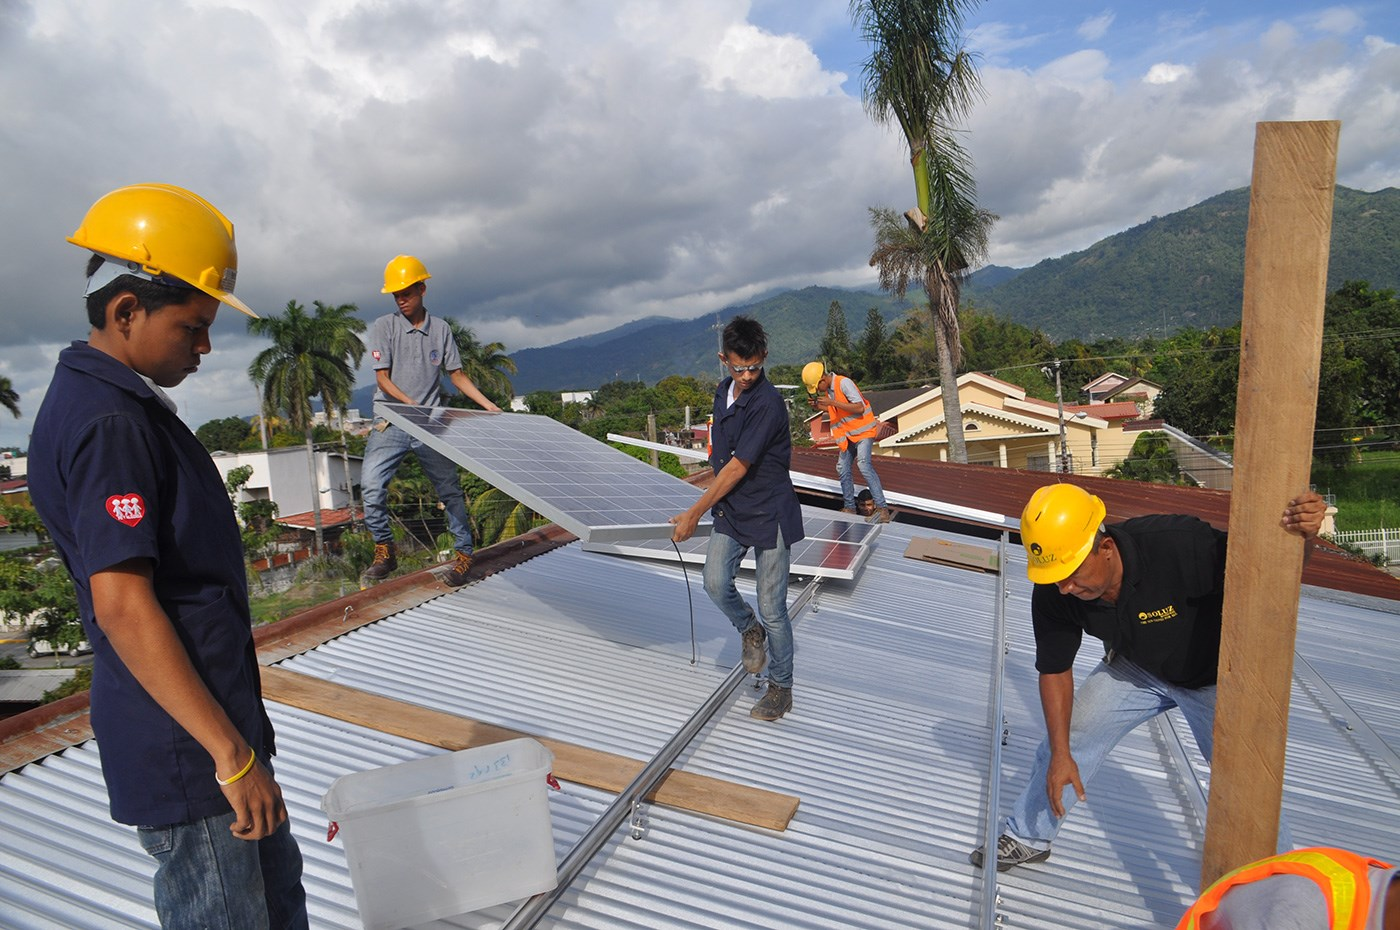 Students helped installed a solar PV system in a trade school that receives at-risk youth who left traditional academic schools looking for alternative trade skill training. This system helped reduce operating costs at the school, allowing the institute to utilize those funds to support educational programs.